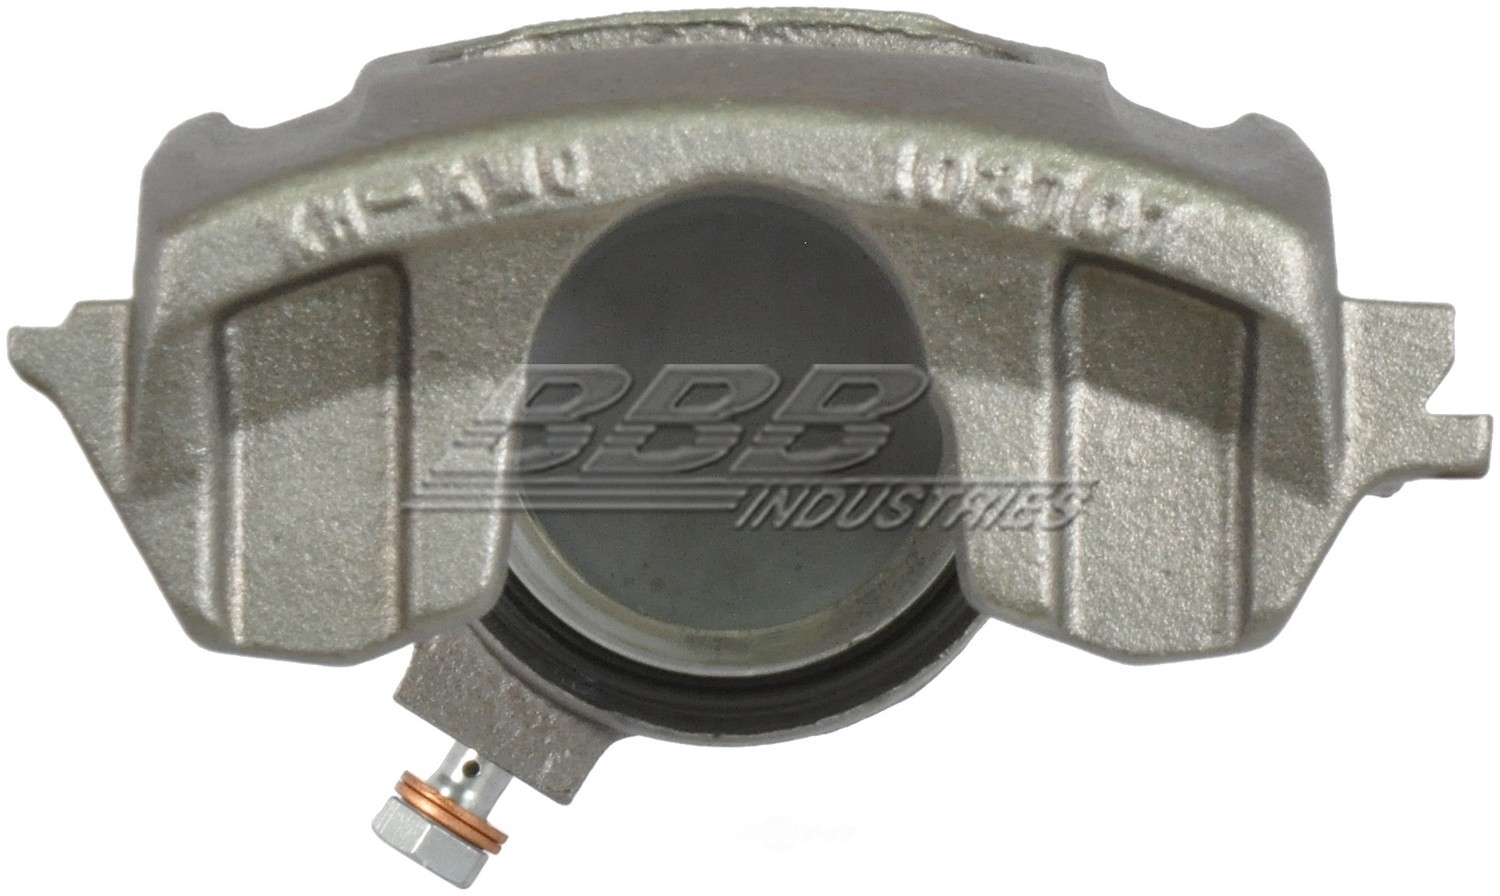 BBB INDUSTRIES - Reman Caliper w/ Installation Hardware - BBA 97-17004B